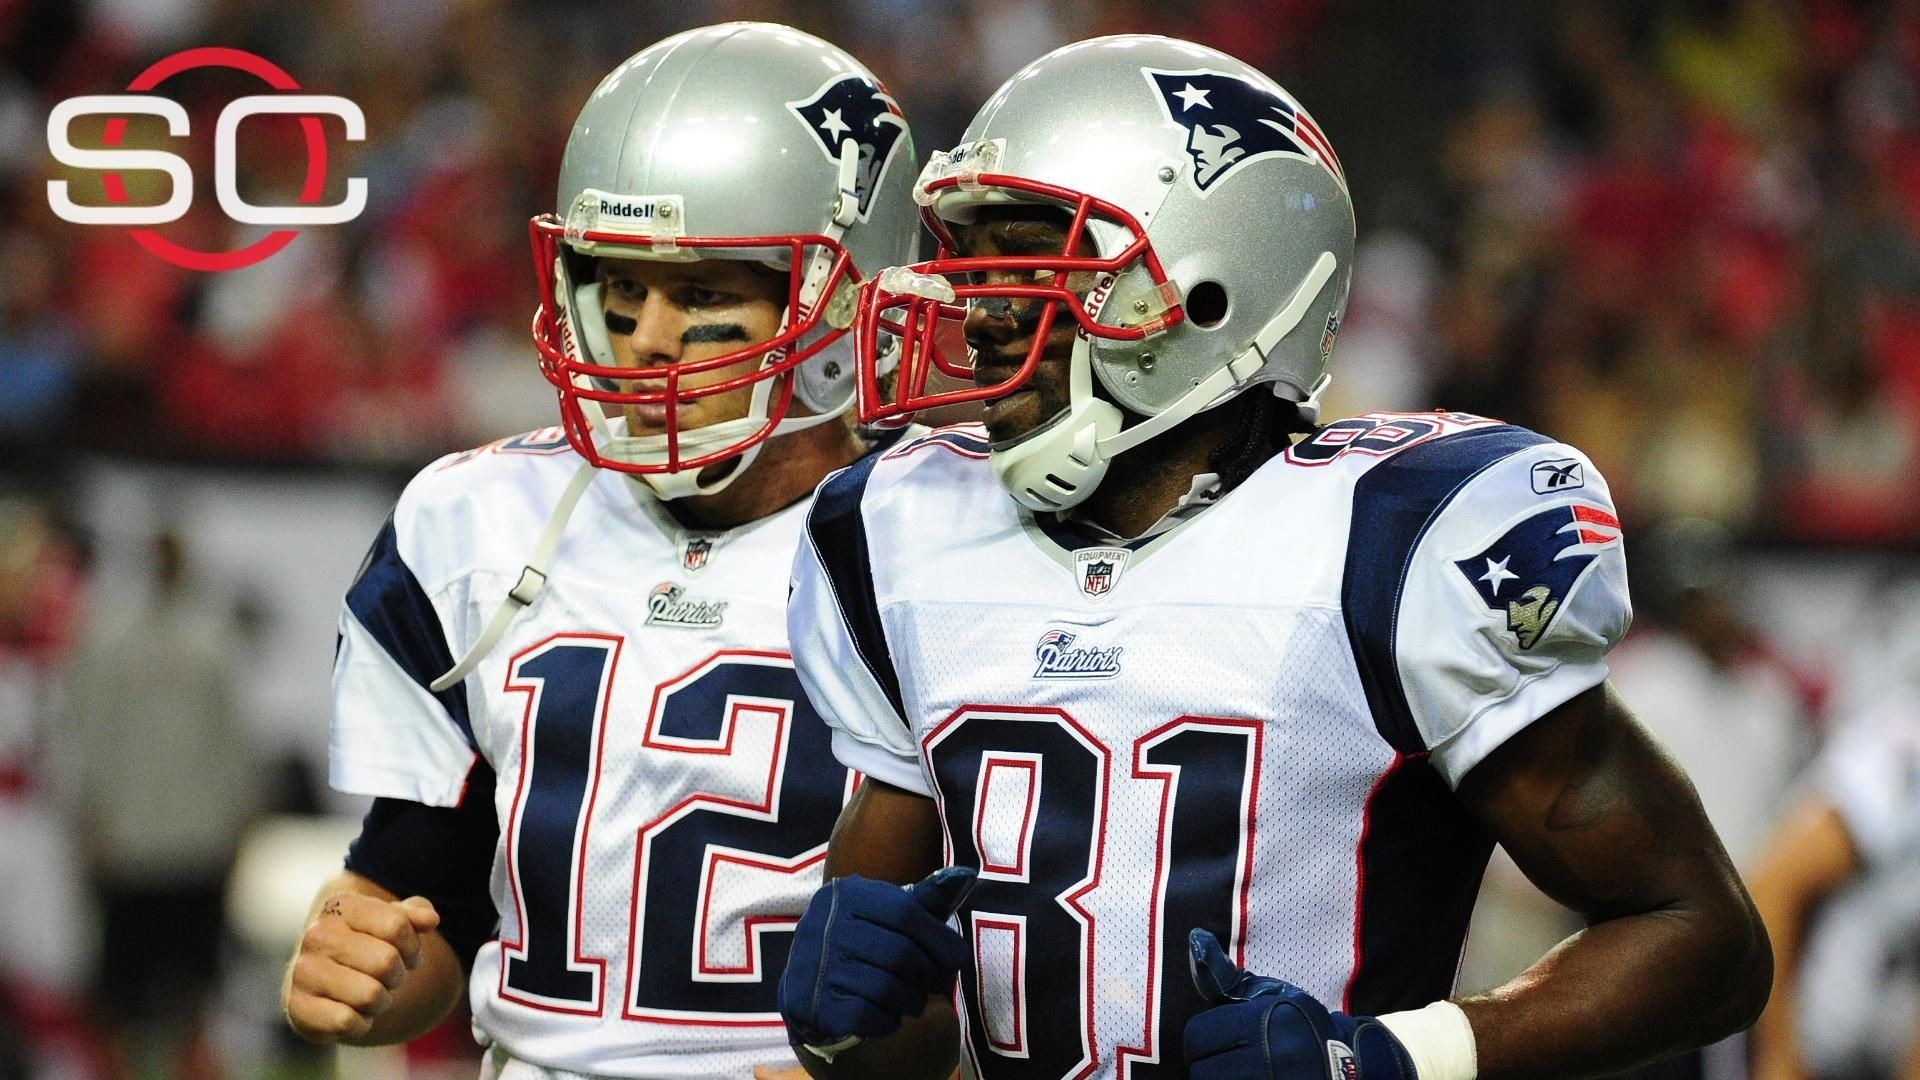 Res: 1920x1080, Randy Moss reflects on career: For 14 years, I think I did something right